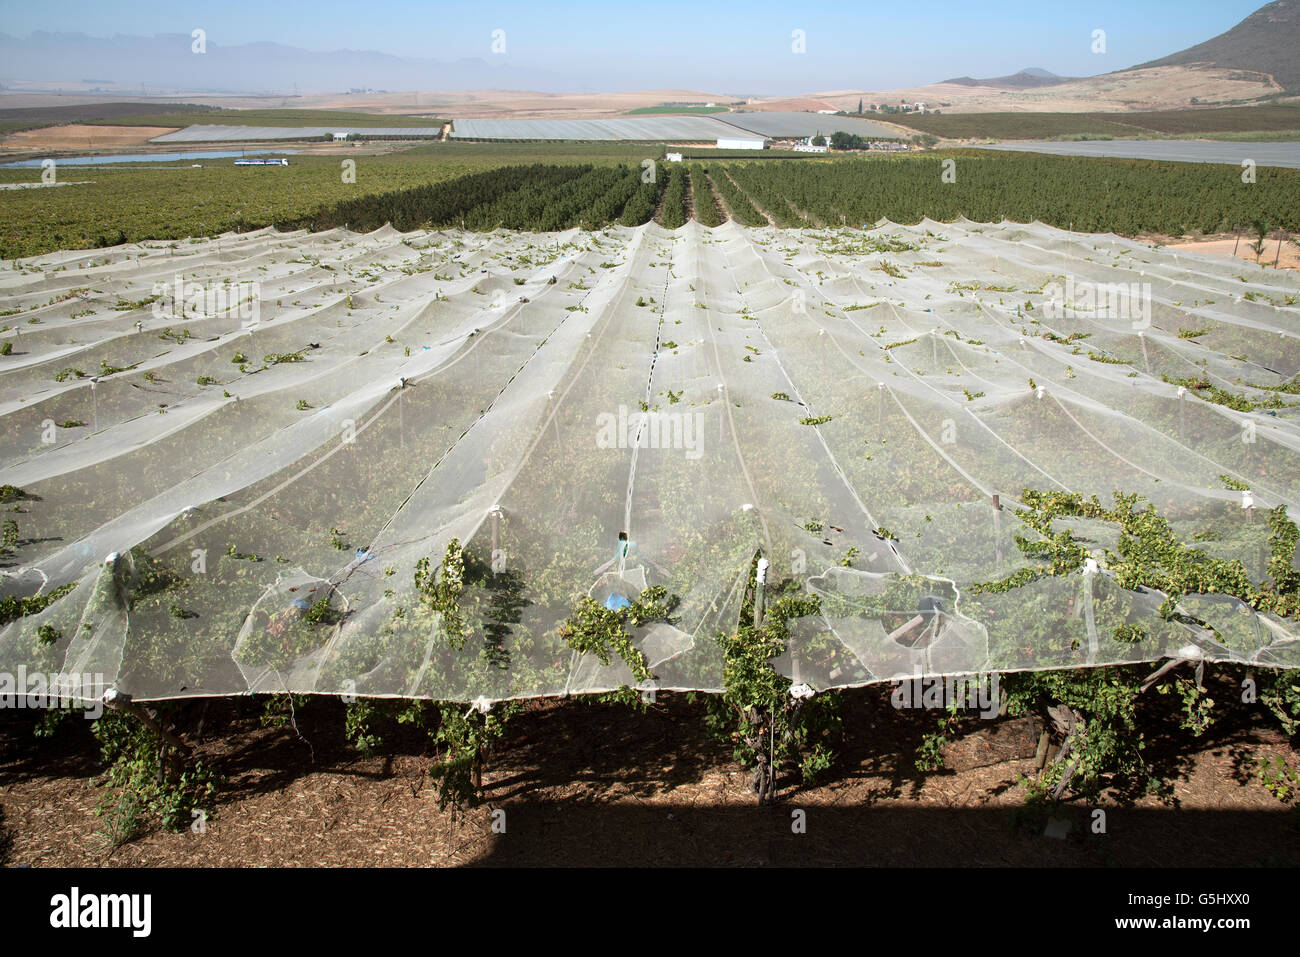 Vines growing and protected by plastic sheeting at Riebeek Kasteel in the Swartland region of Southern Africa - Stock Image